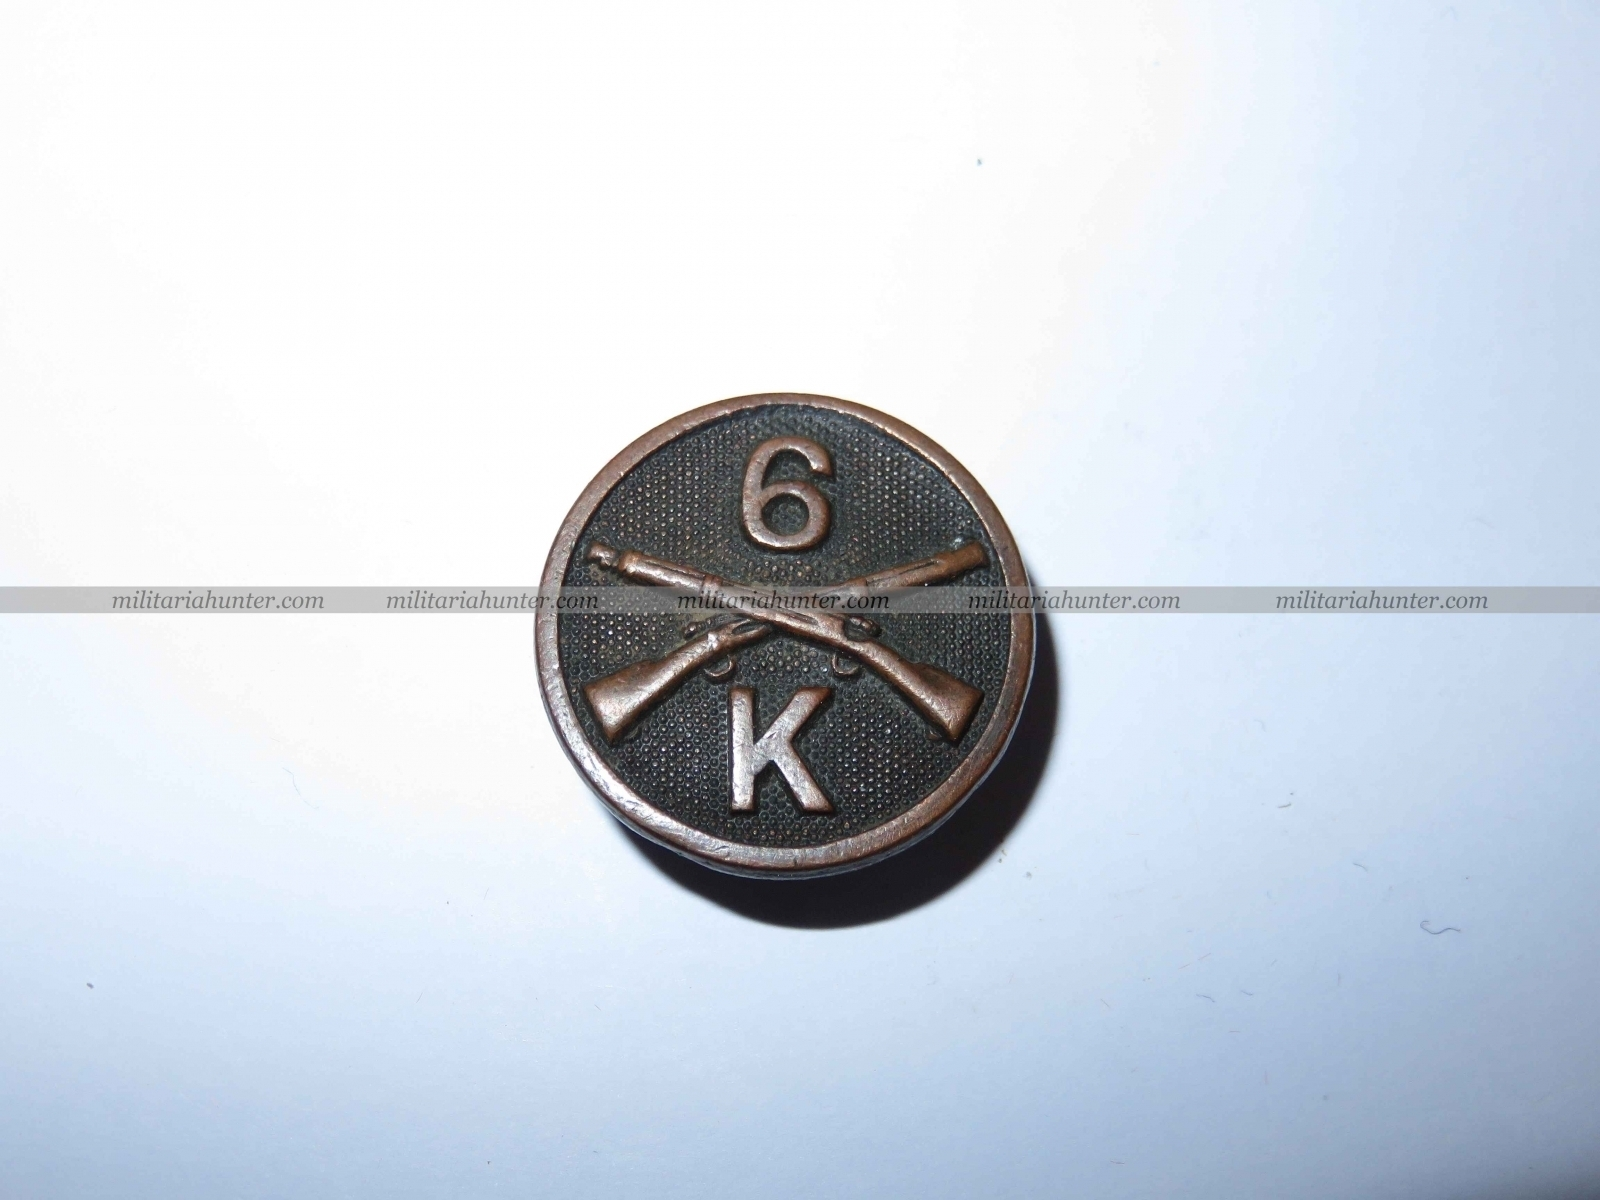 militaria : Collar disc 6th Infantry - K coy - ww1